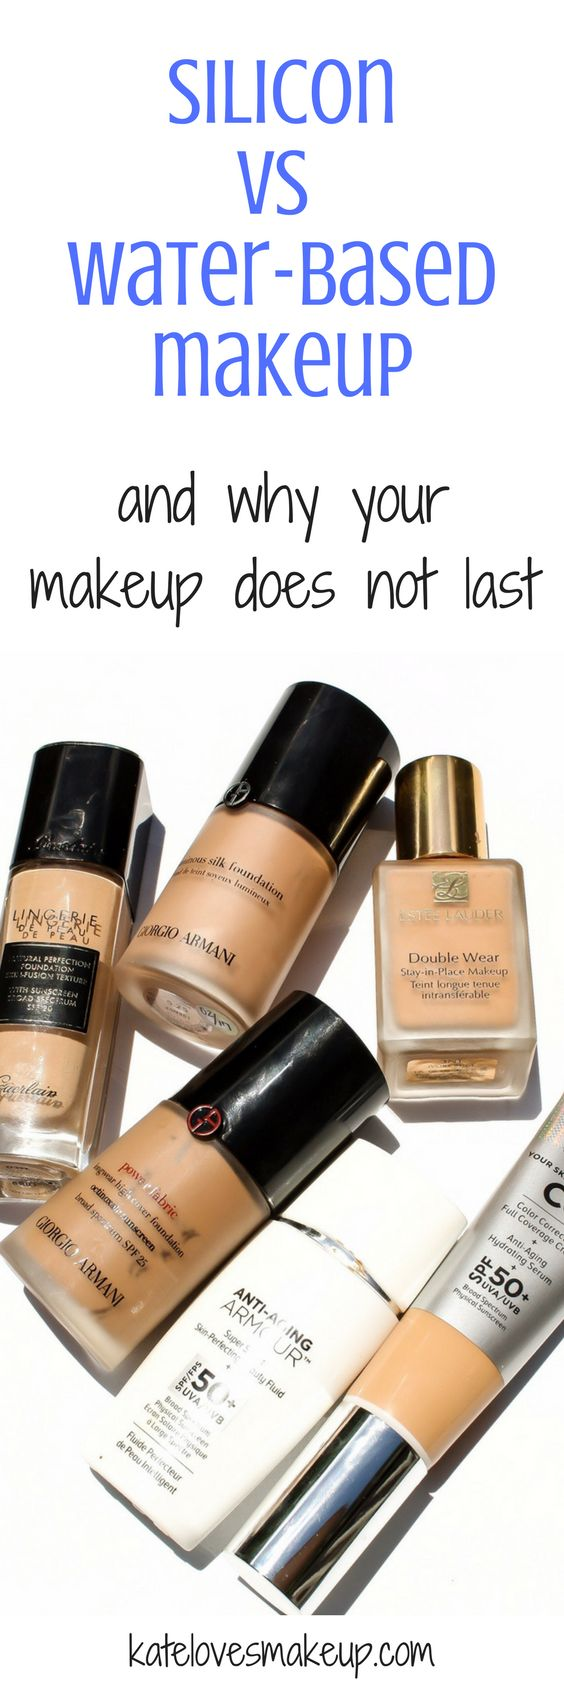 Silicon vs water-based makeup. Beauty blogger Kate Loves Makeup tells you how to tell the difference and why your makeup does not last.